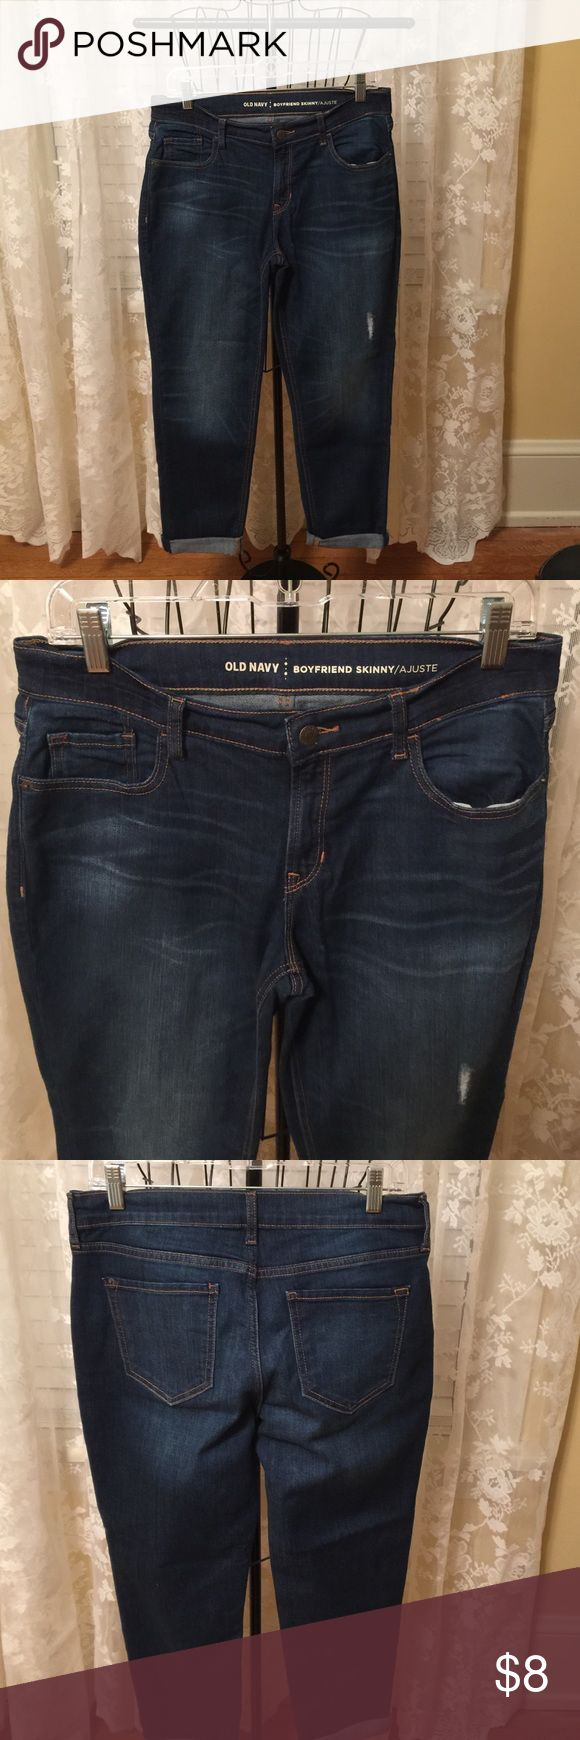 Ladies Old Navy Boyfriend Crop Jeans Old Navy boyfriend skinny crop jeans like new condition size 4 72% cotton 27% polyester 1% spandex Old Navy Jeans Ankle & Cropped